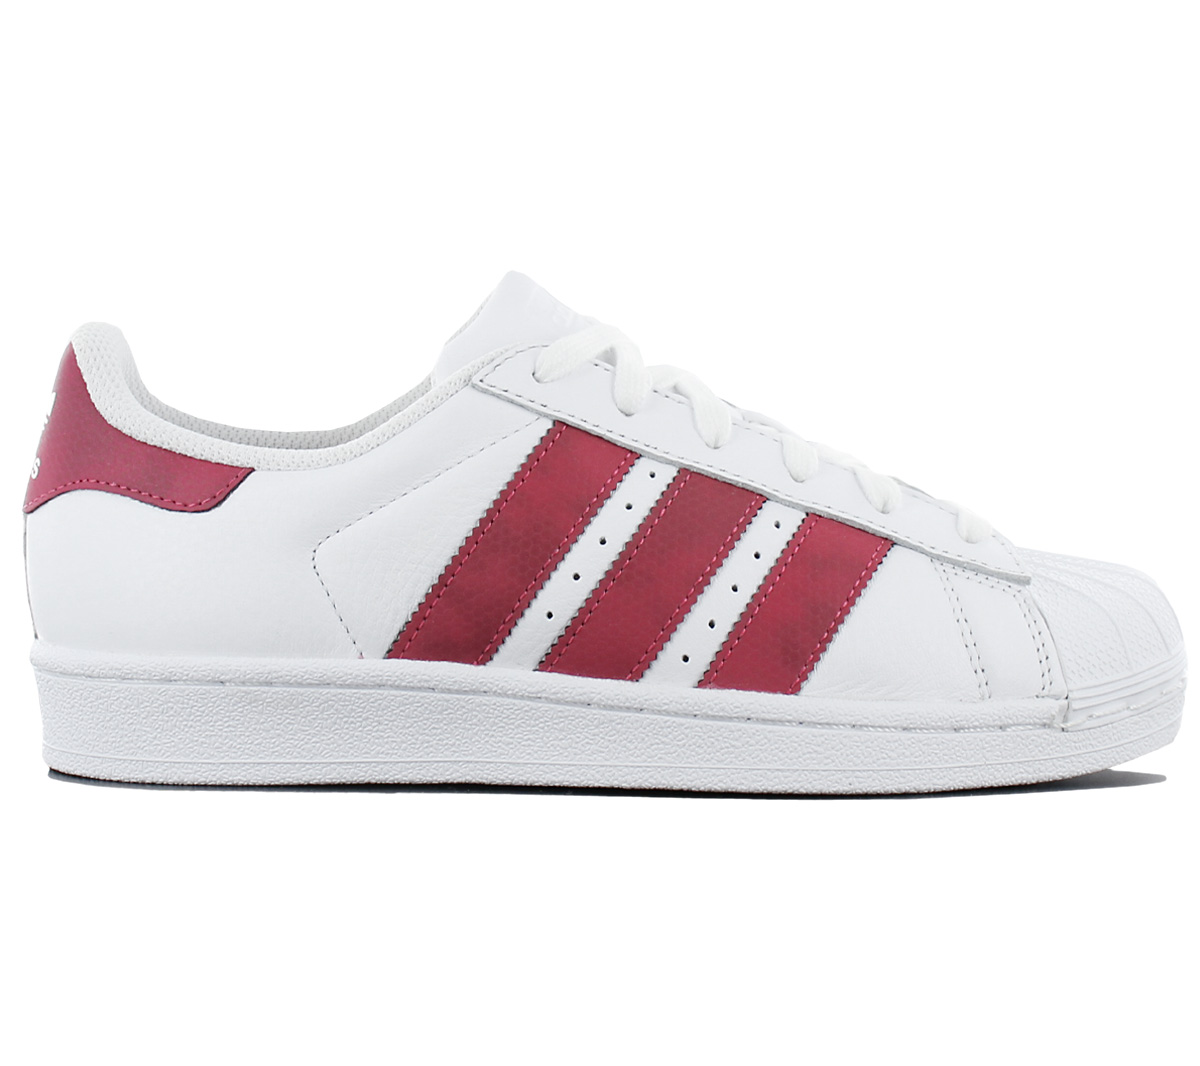 huge selection of e5896 27326 Adidas Superstar 2 Sneaker Women's Leather White Sneakers Leisure ...